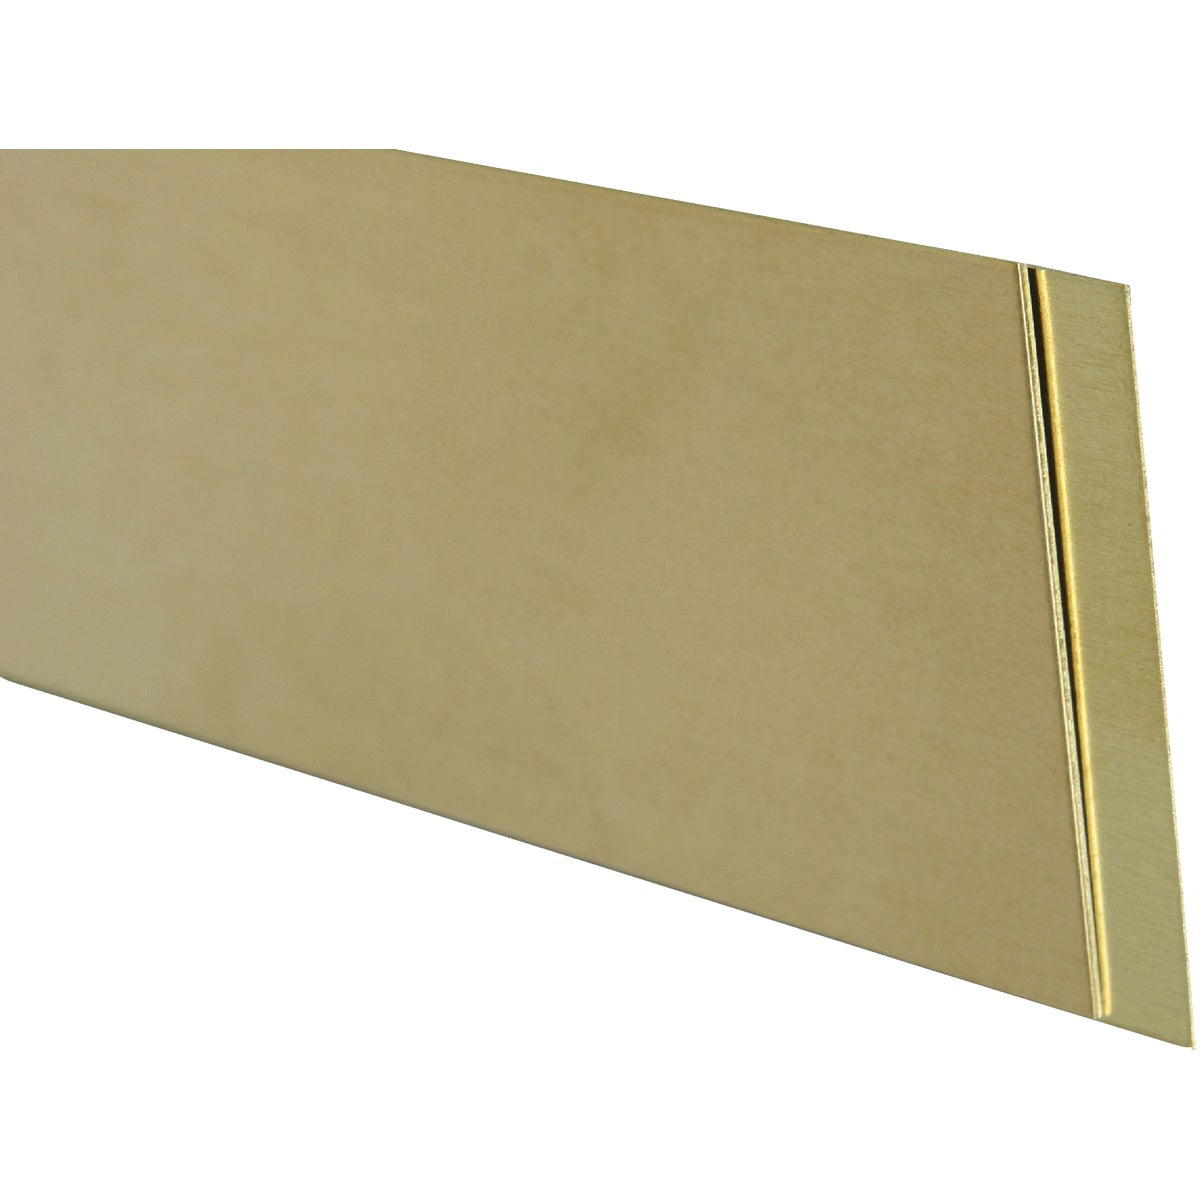 .016X1/2X12 BRASS STRIP - 8231 by K&s Precision Metals